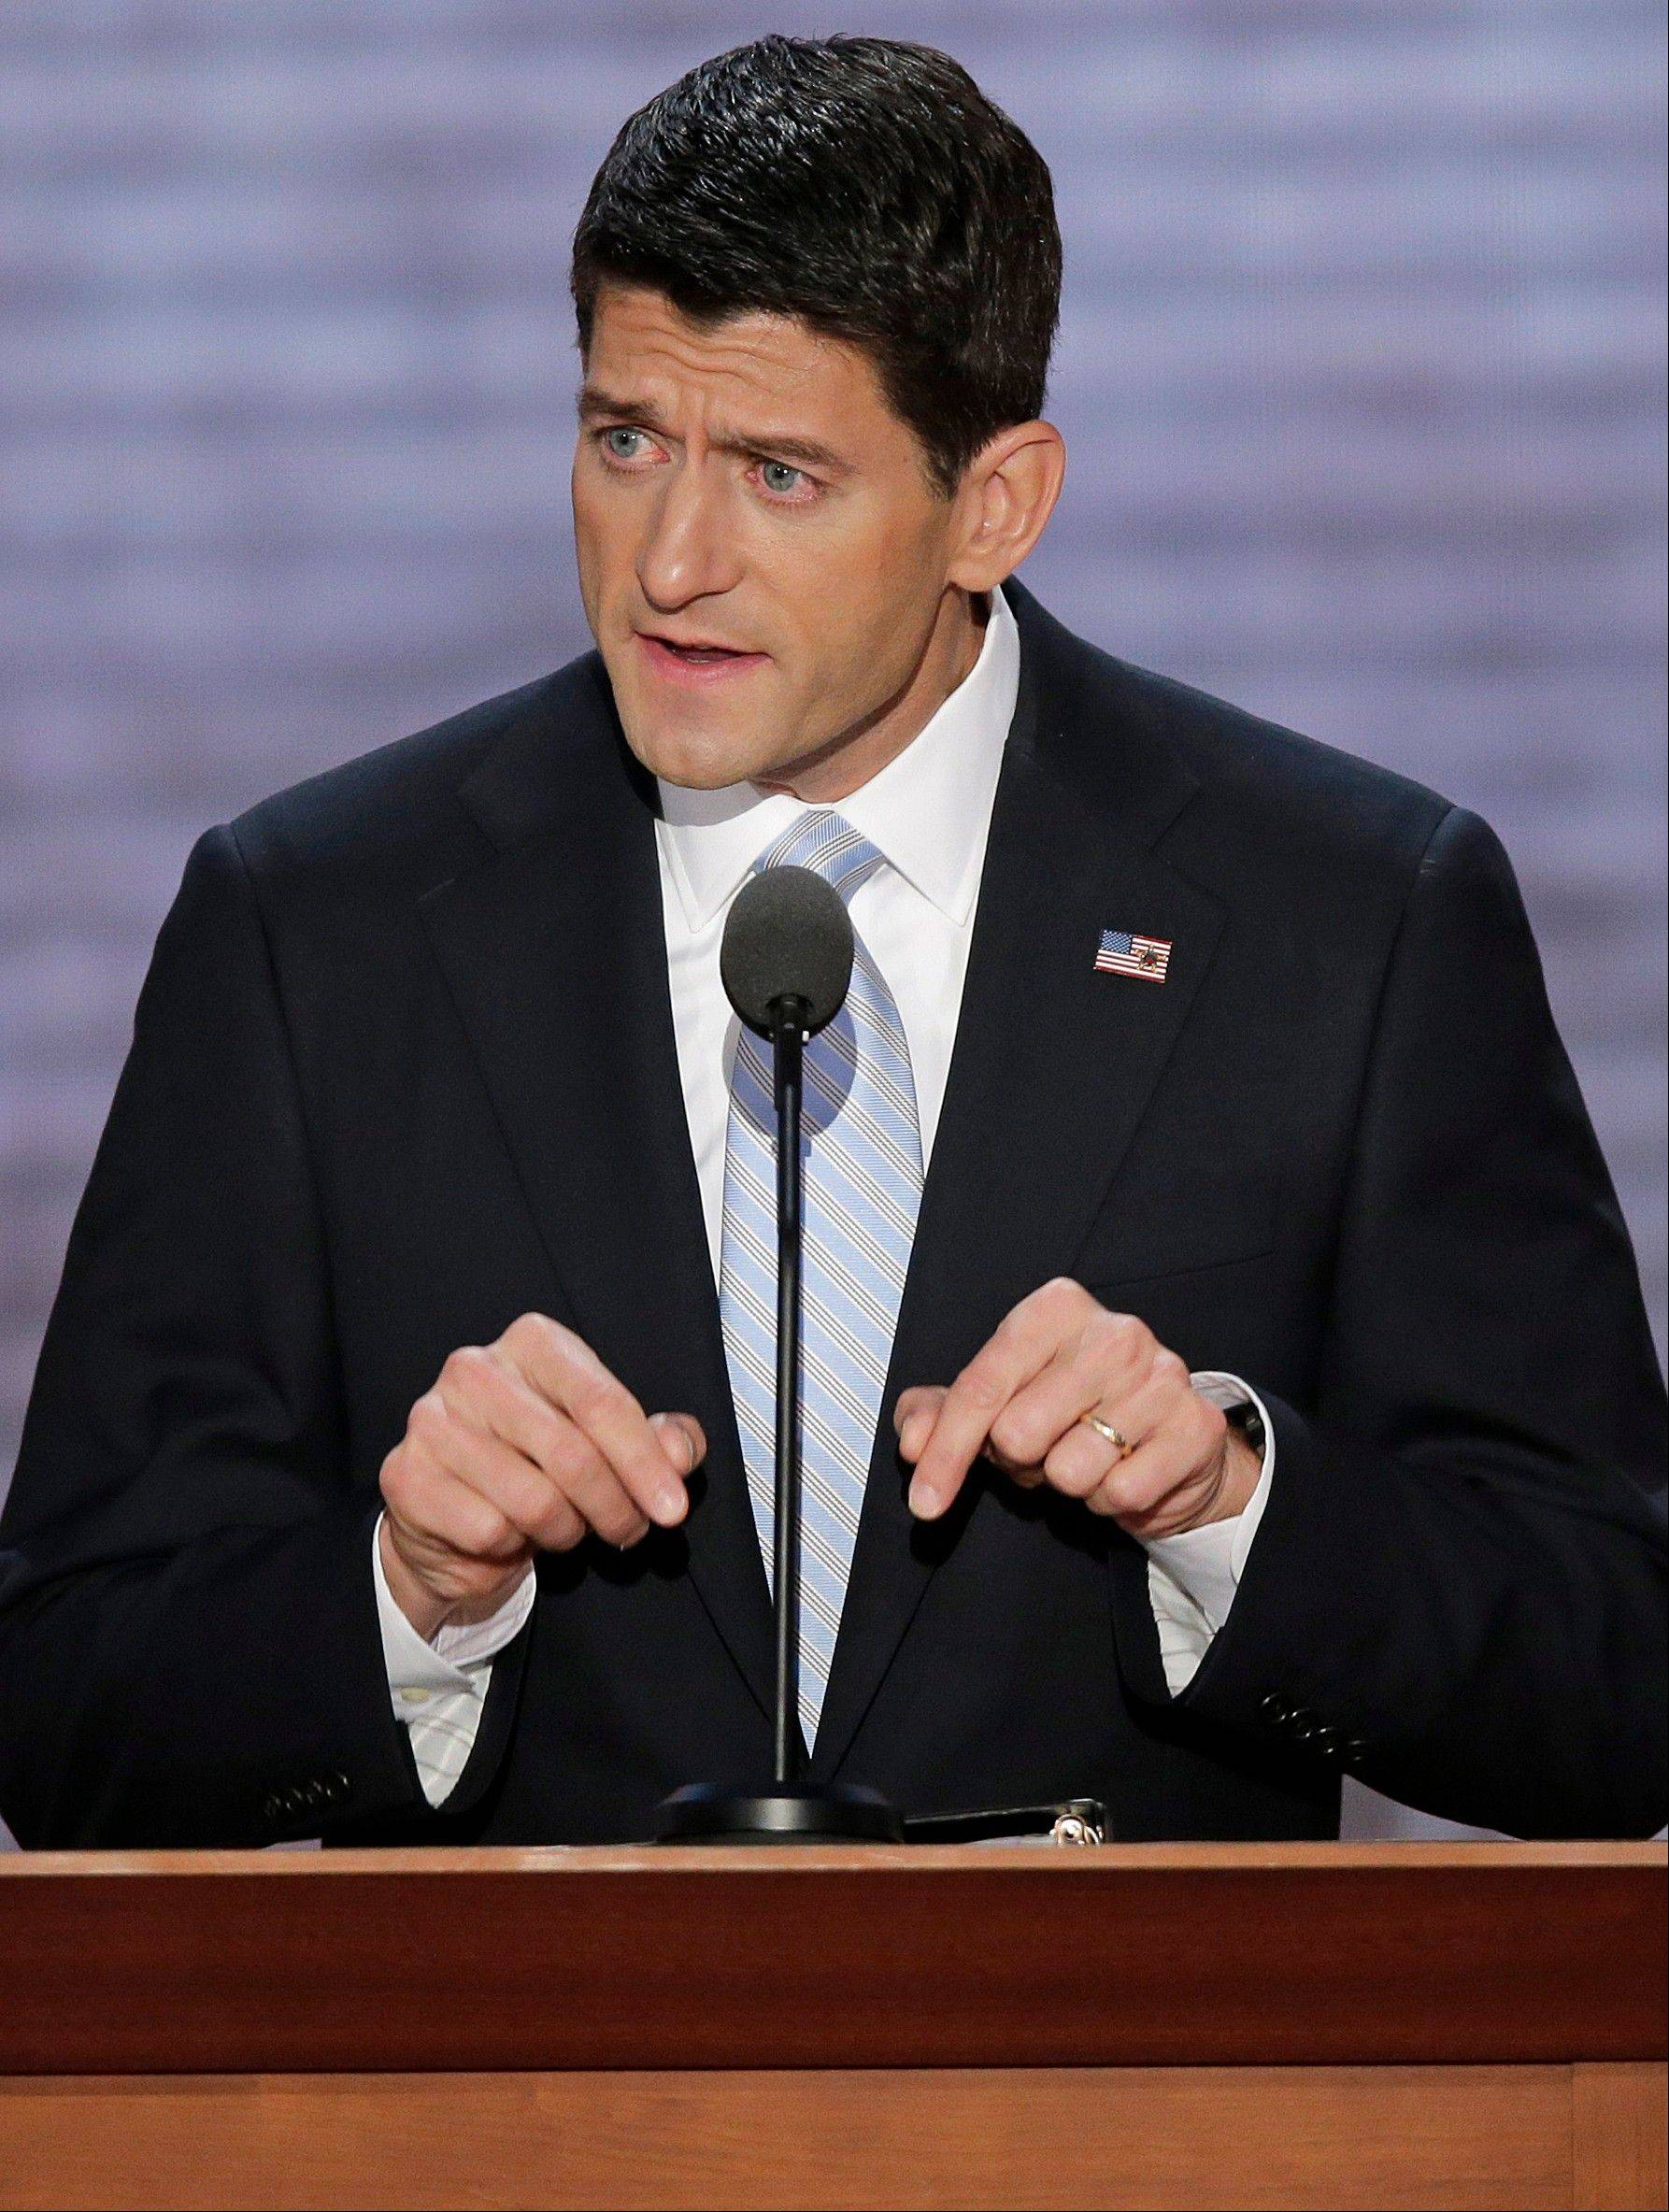 Fact checkers criticized after saying Ryan erred